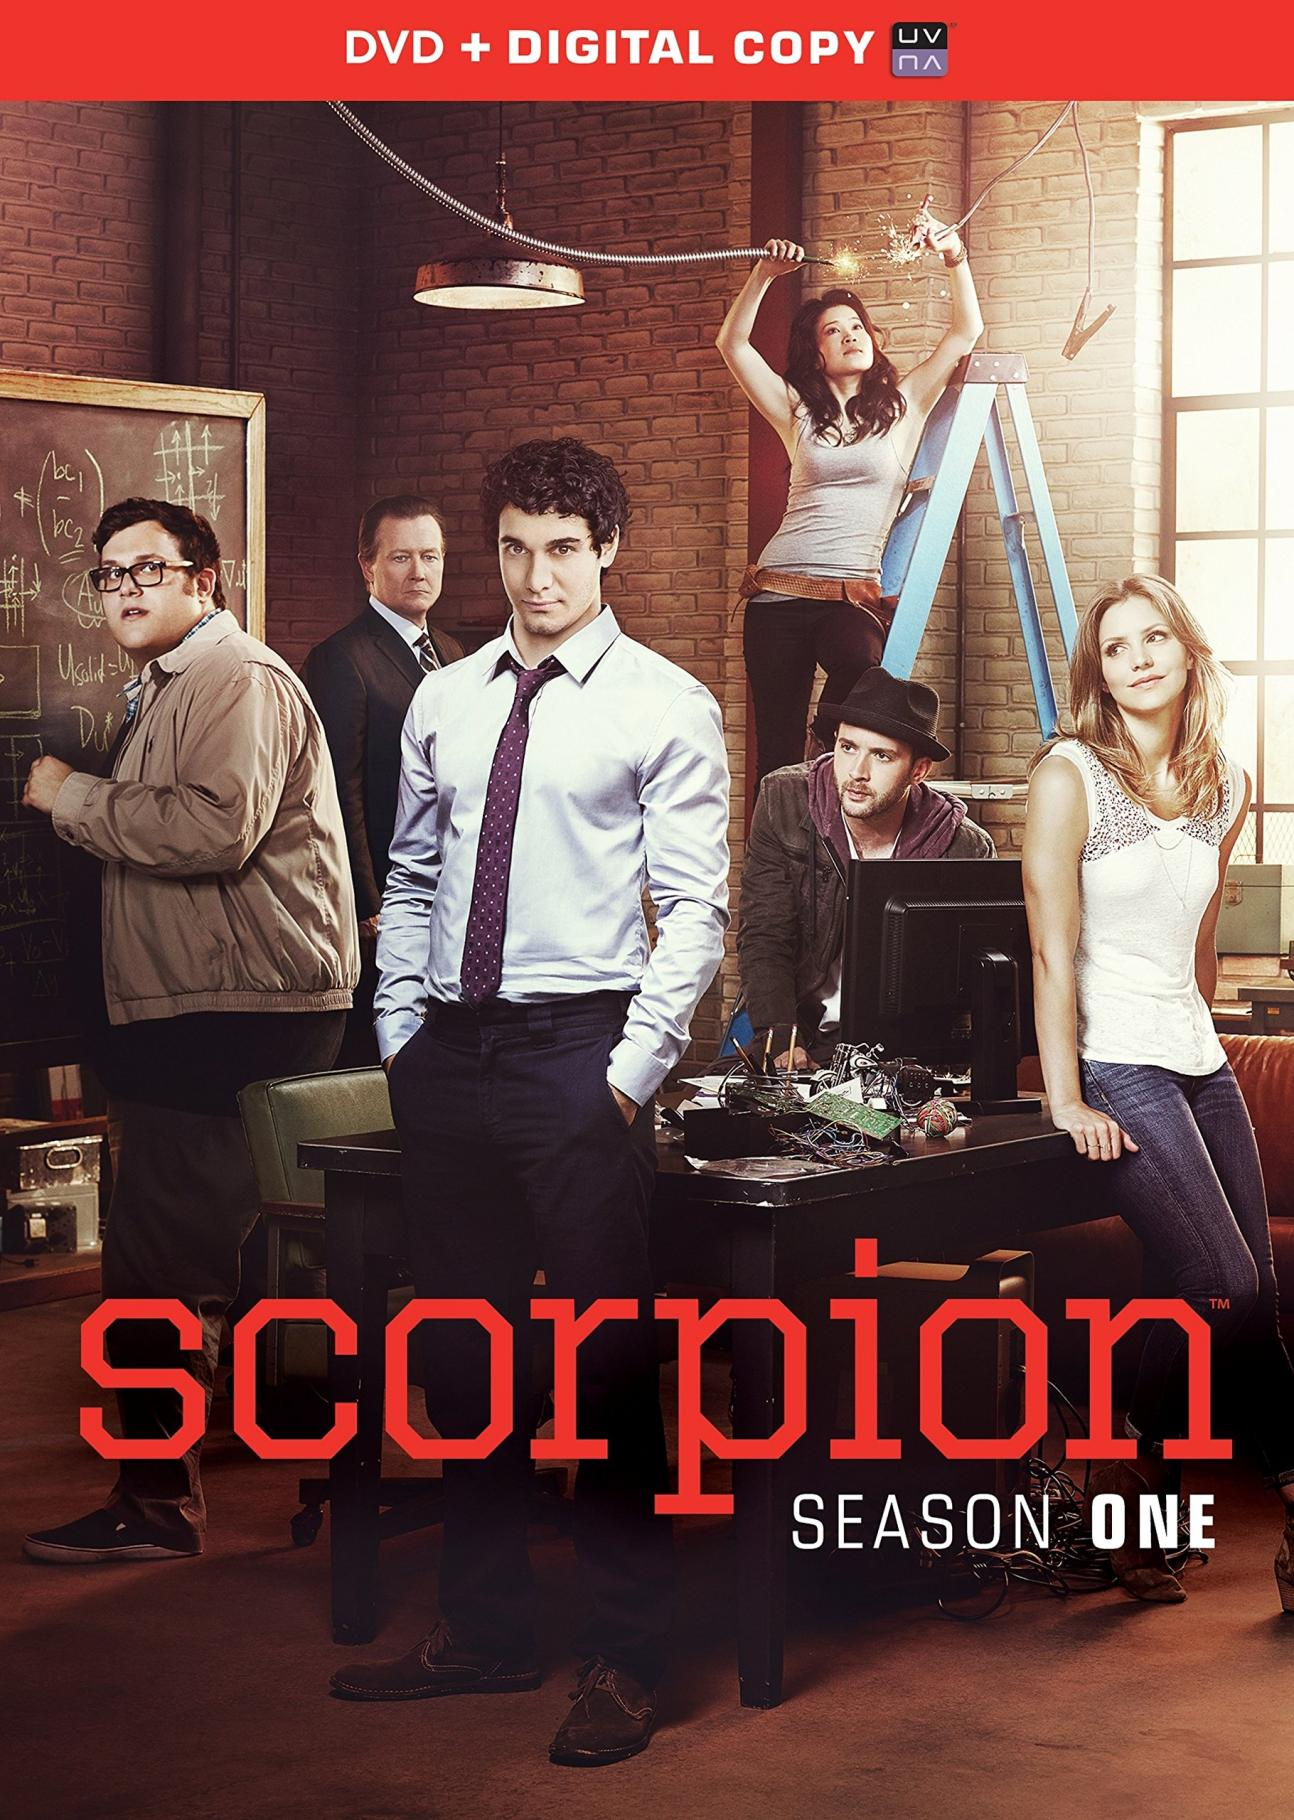 Scorpion. Season one